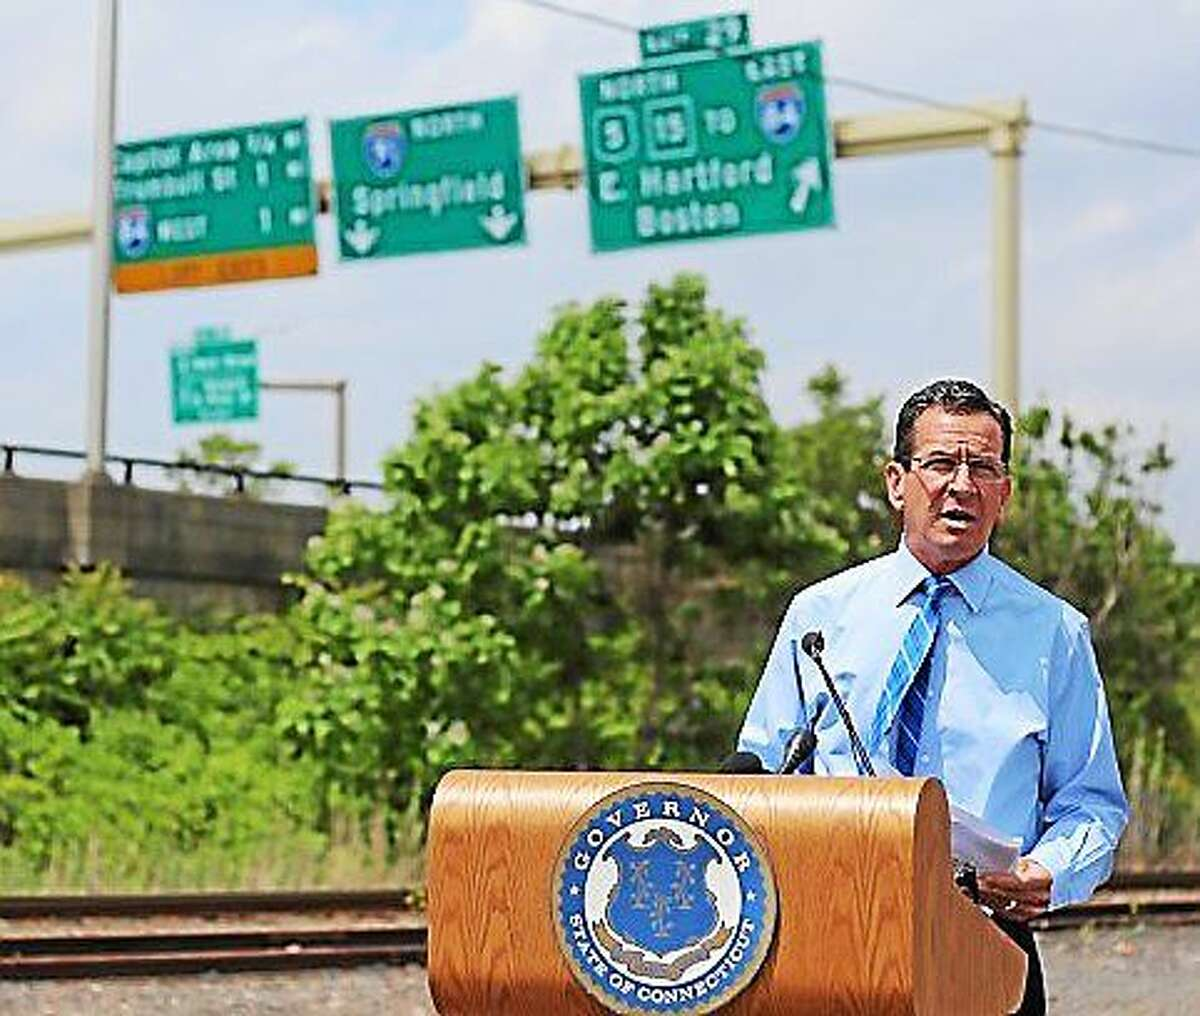 Gov. Dannel P. Malloy with the Charter Oak Bridge in Hartford in the background